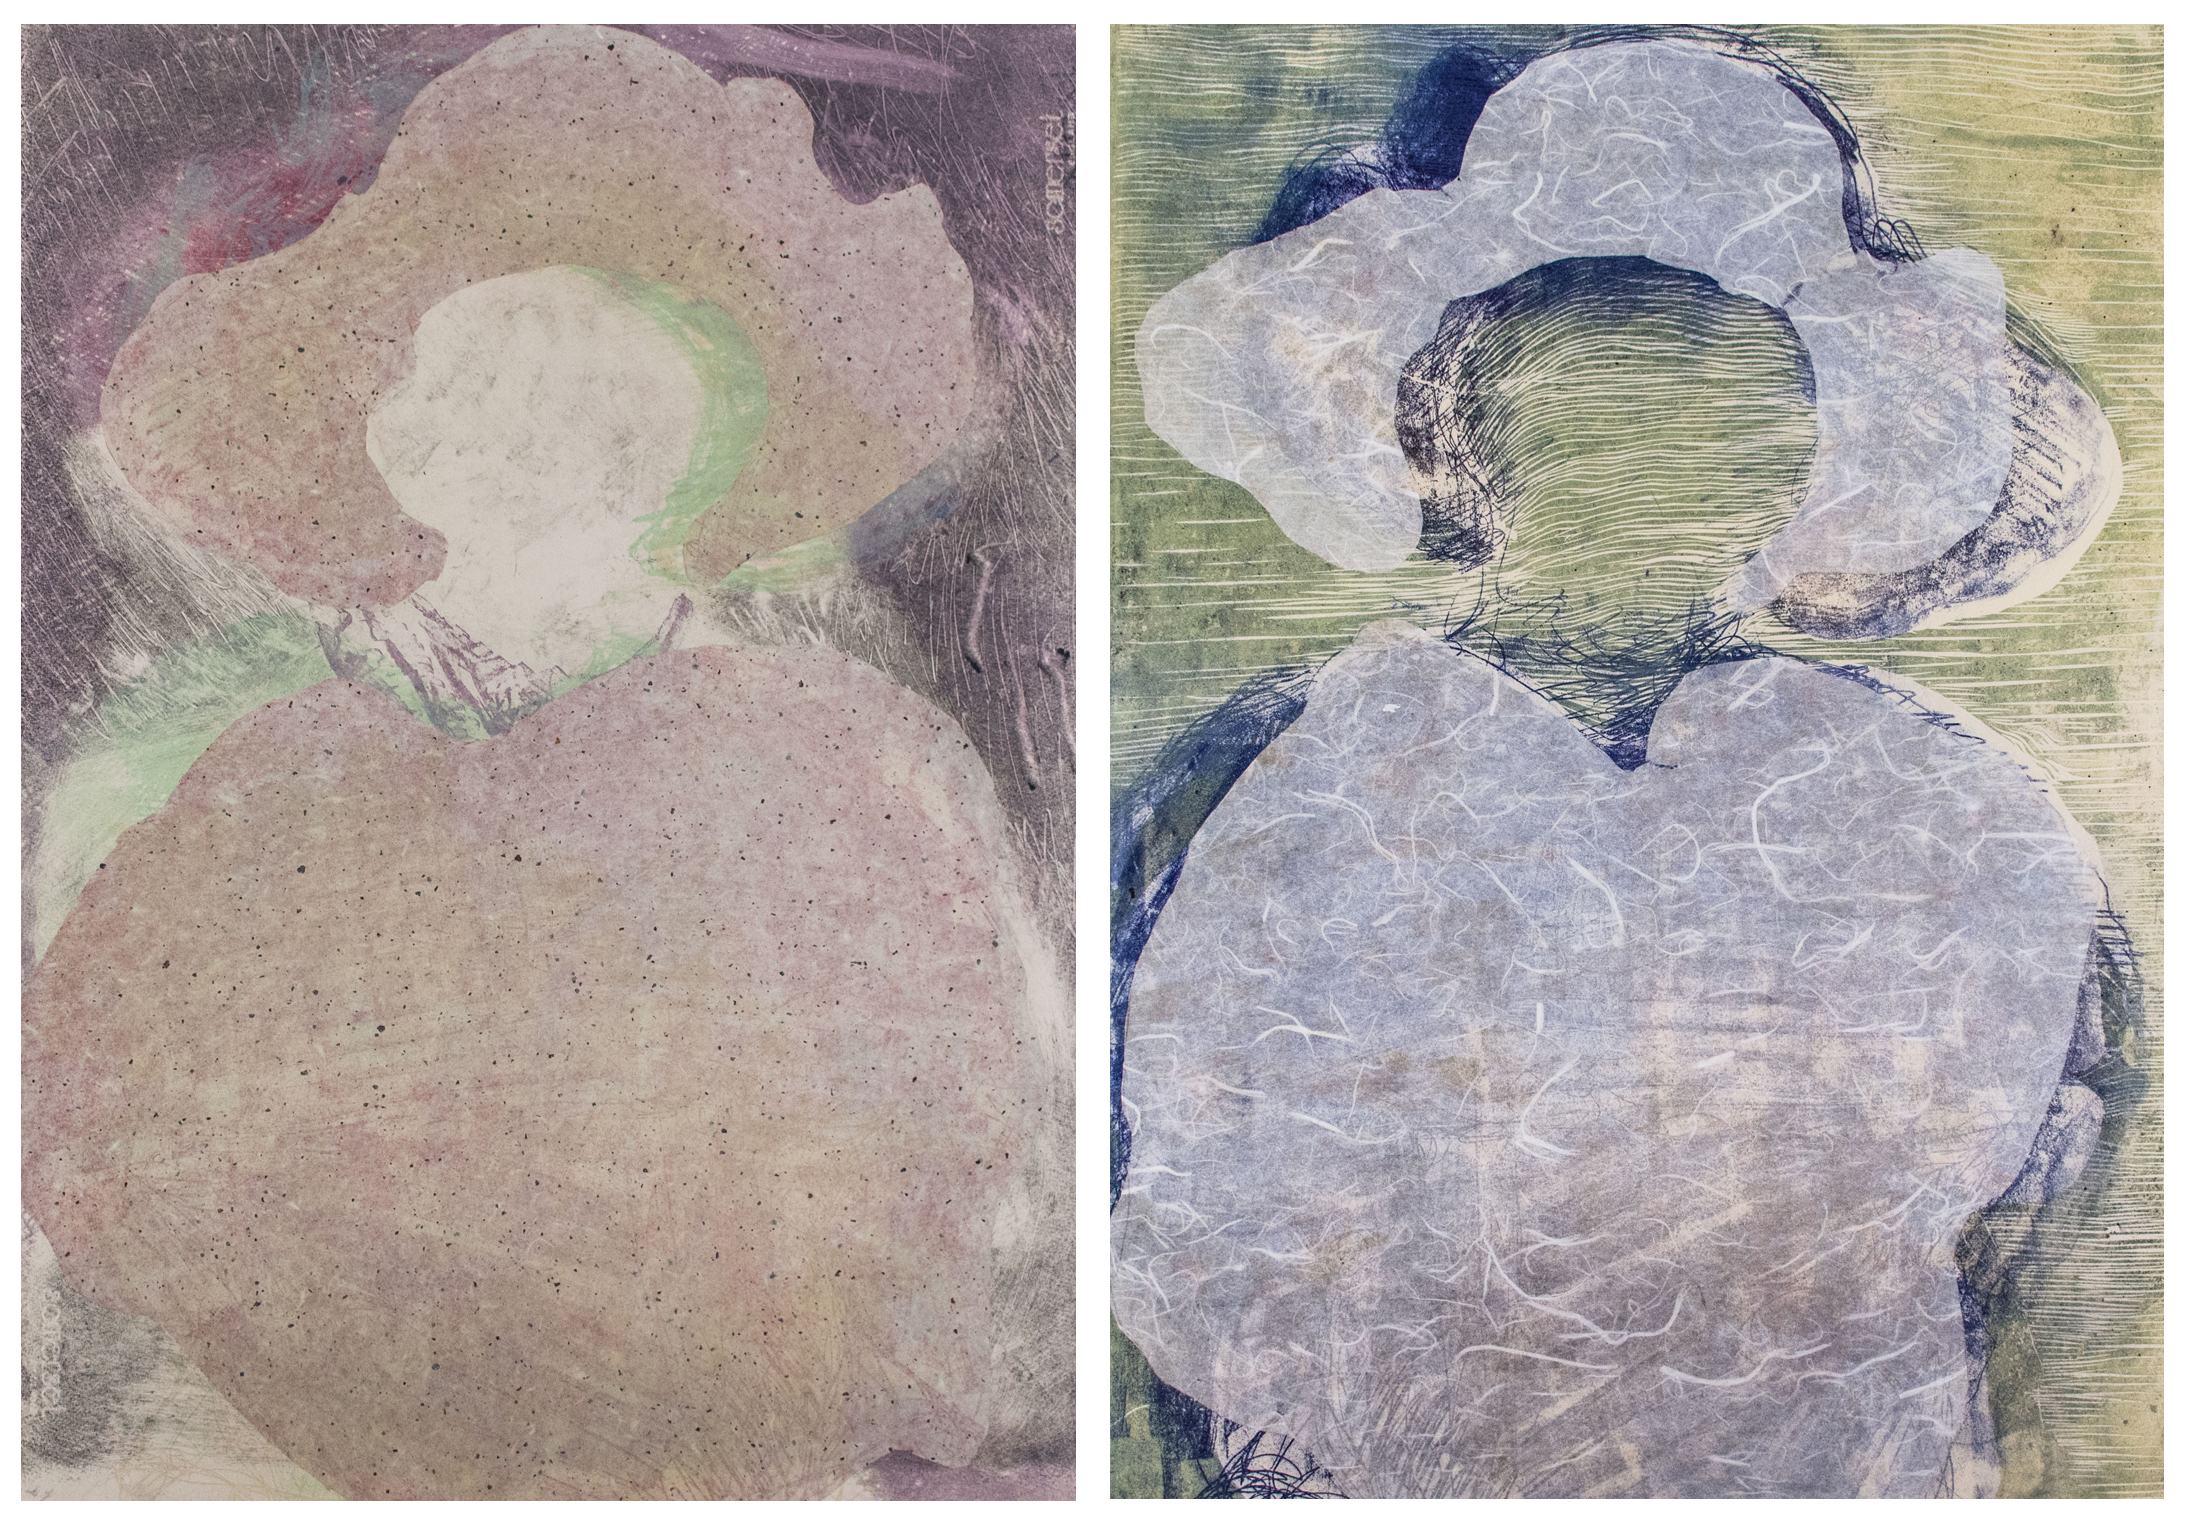 Left: Chine-colle on stone lithograph; Right: Chine-colle on relief print. 22x30 inches ea., 2014